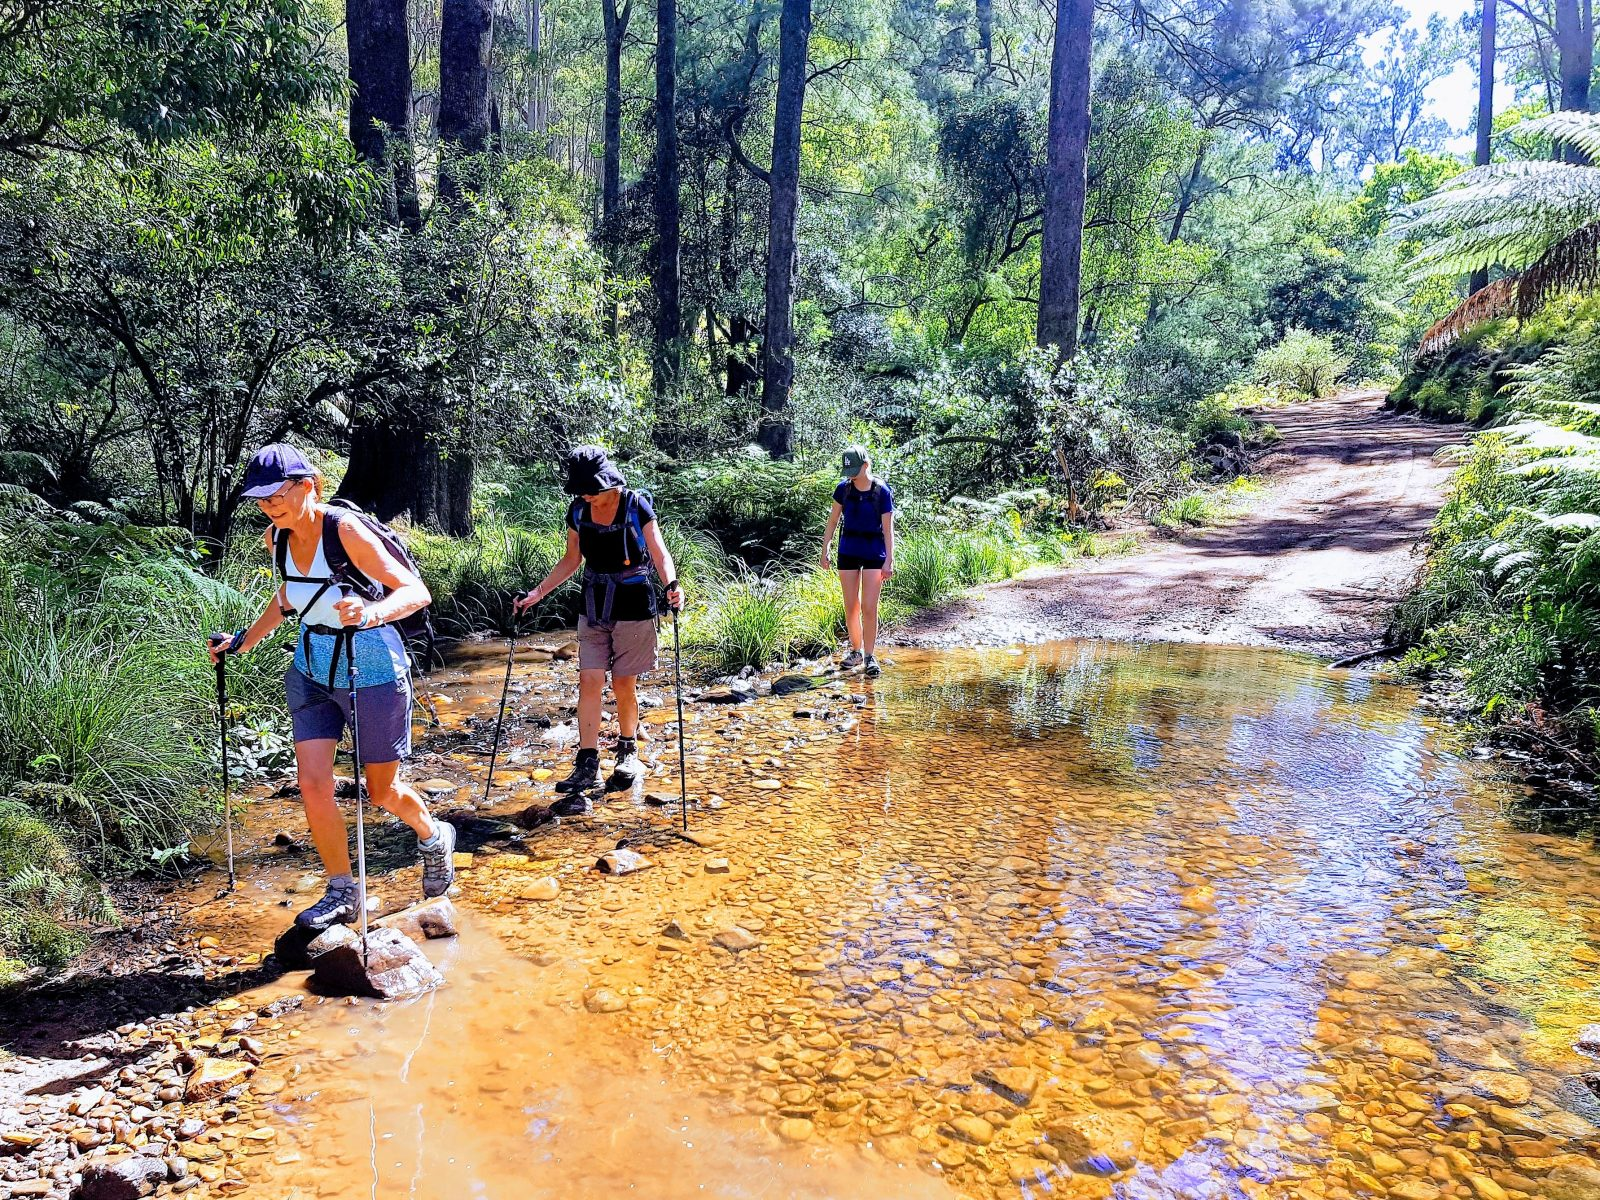 Braving the rapids on the Pack-Free Six Foot Track Walk by Life's an Aventure